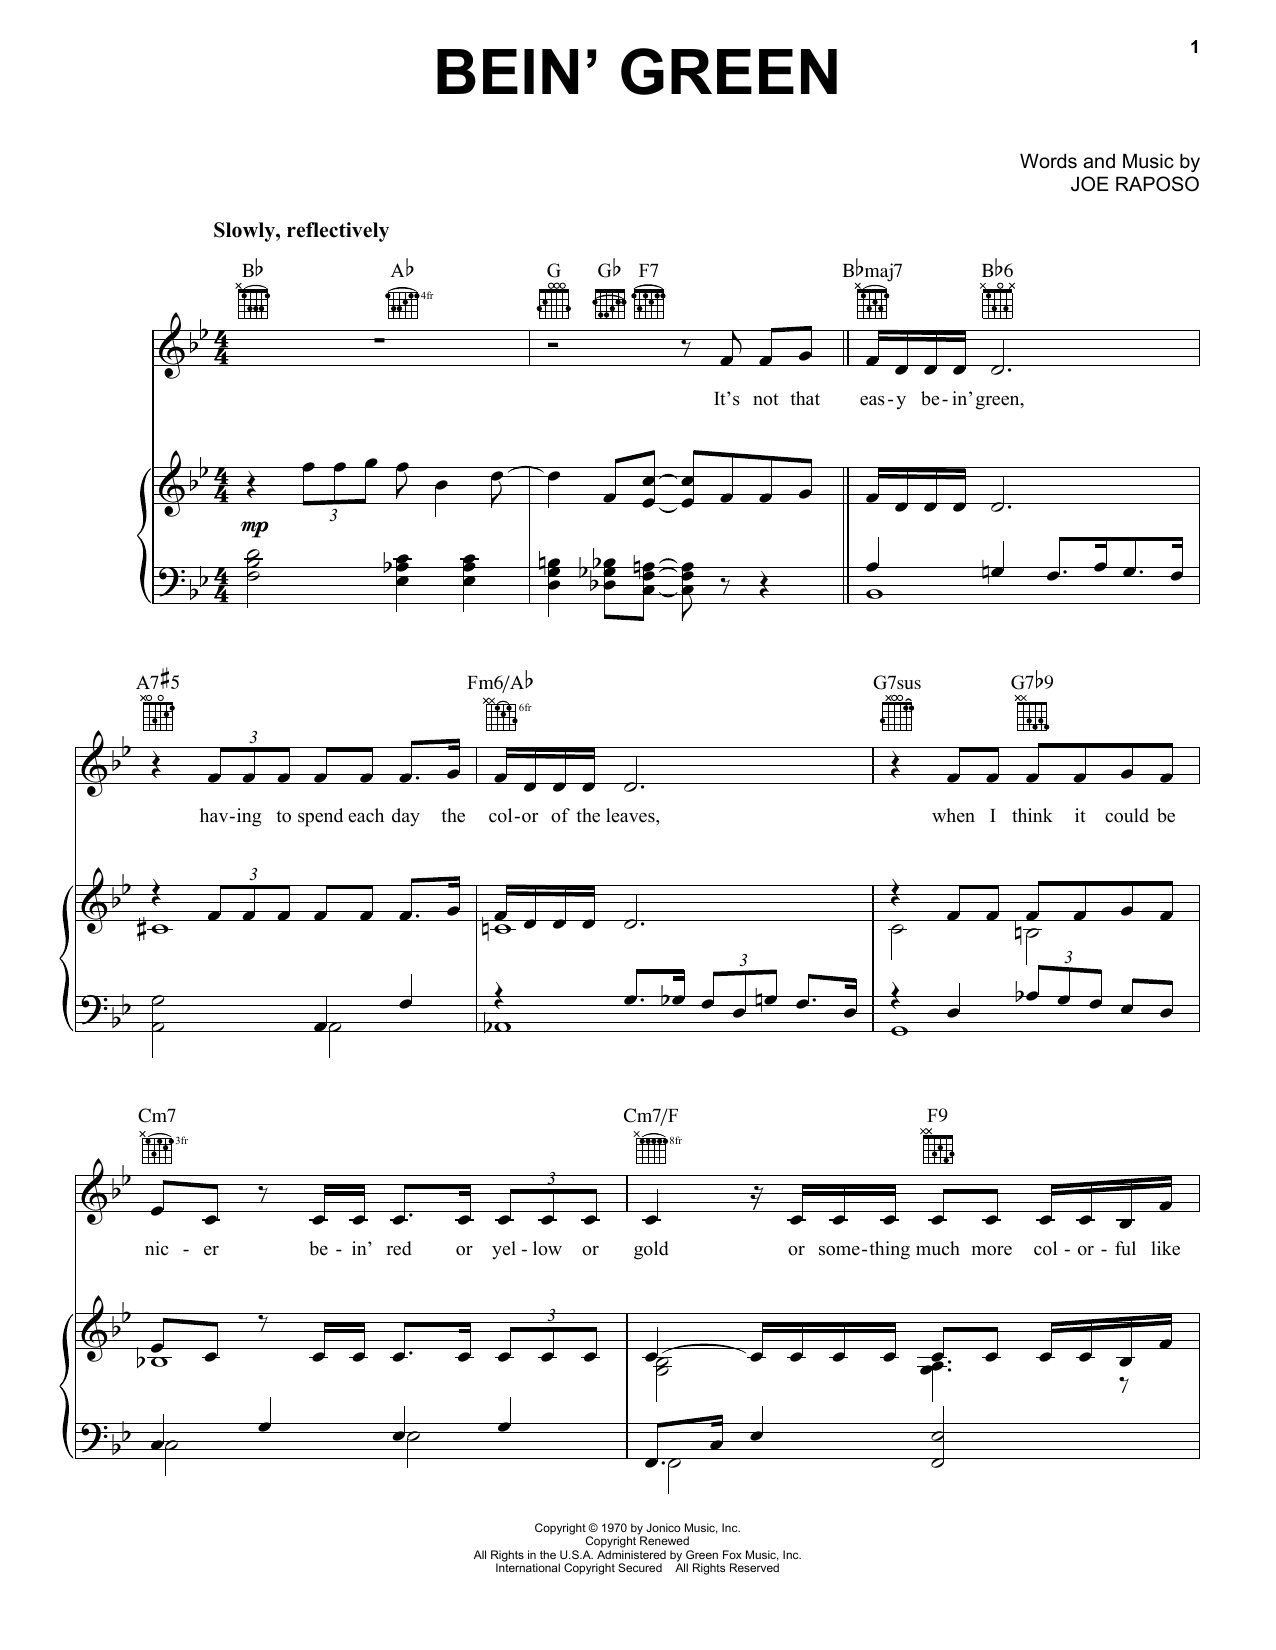 Bein' Green sheet music for voice, piano or guitar by Joe Raposo